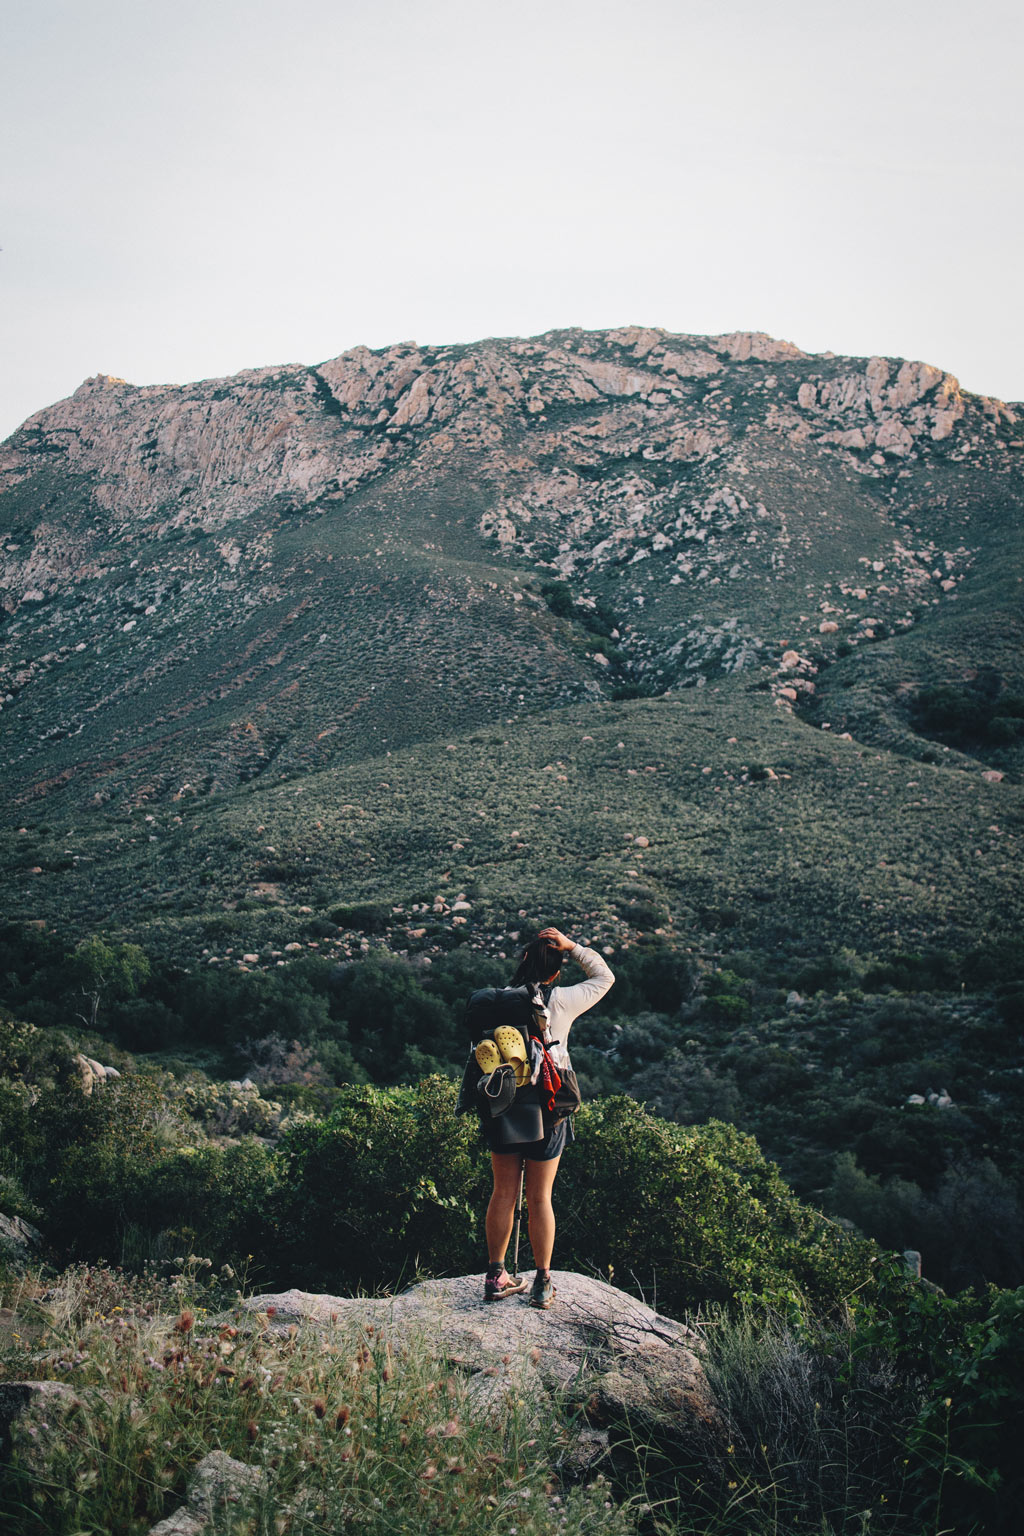 The early days of the PCT. Hiking across Southern California was a new and mind expanding experience. Here I am. Photo by Karen Wang